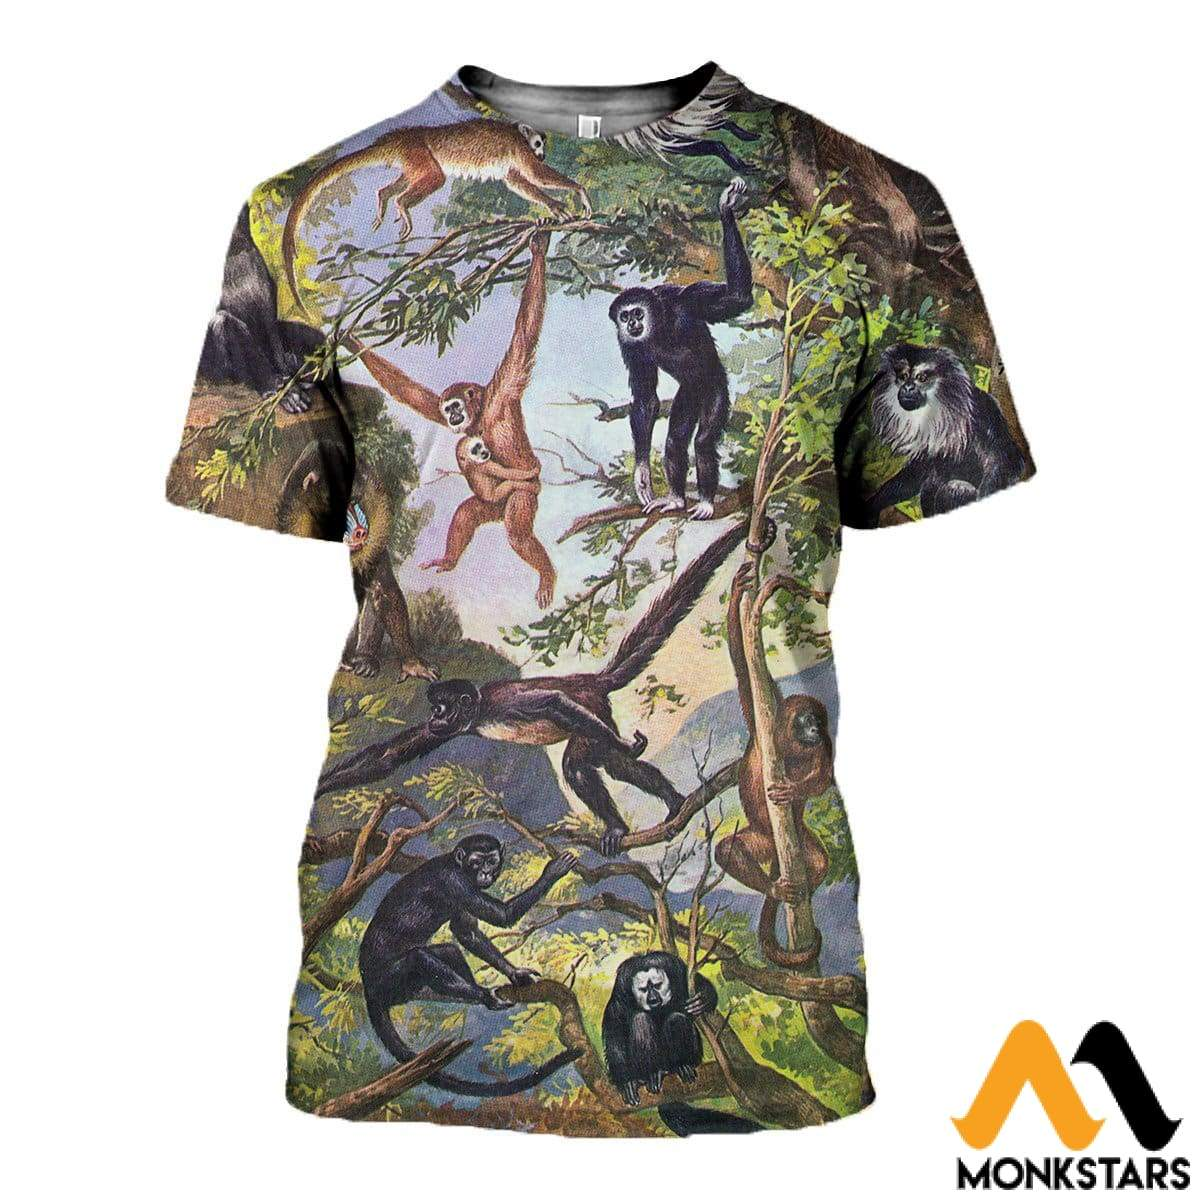 3D All Over Printed Type Of Primate Shirts And Shorts T-Shirt / Xs Clothes